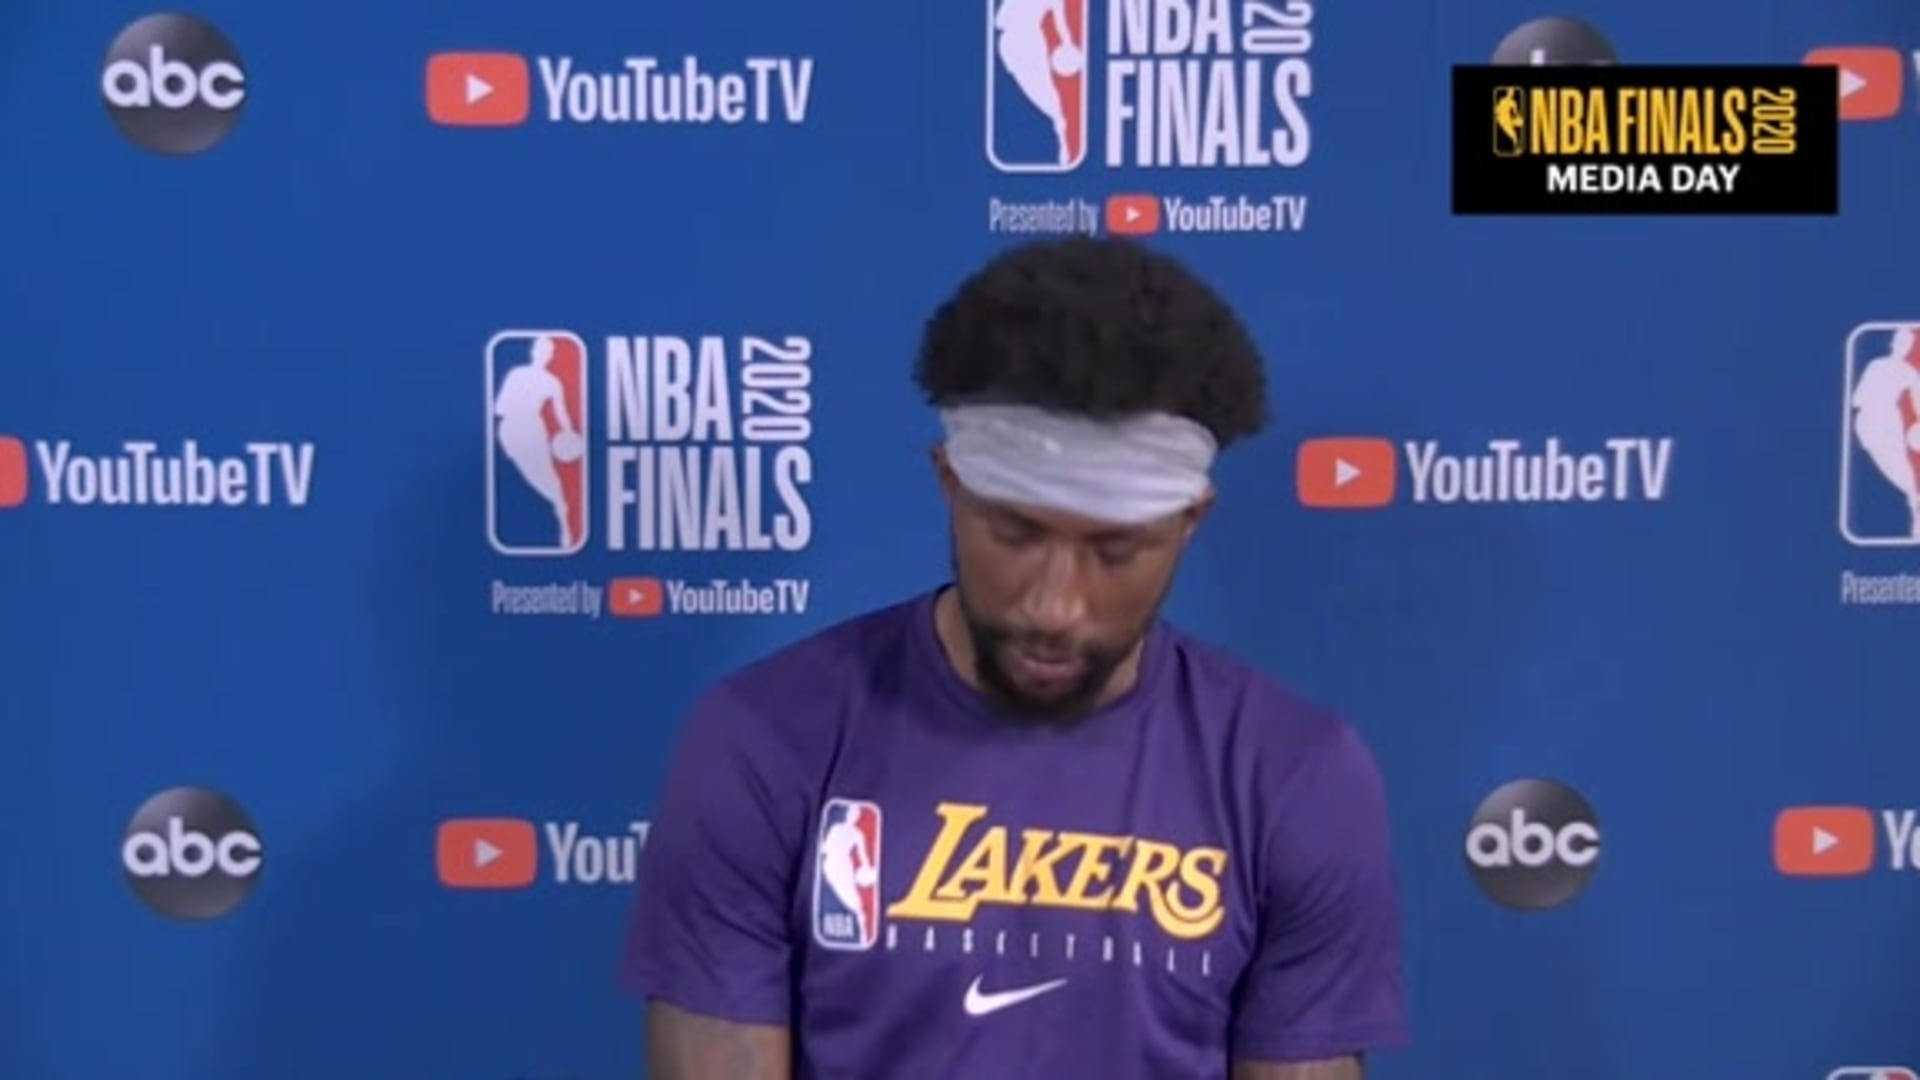 NBA Finals Media Day: Kentavious Caldwell-Pope